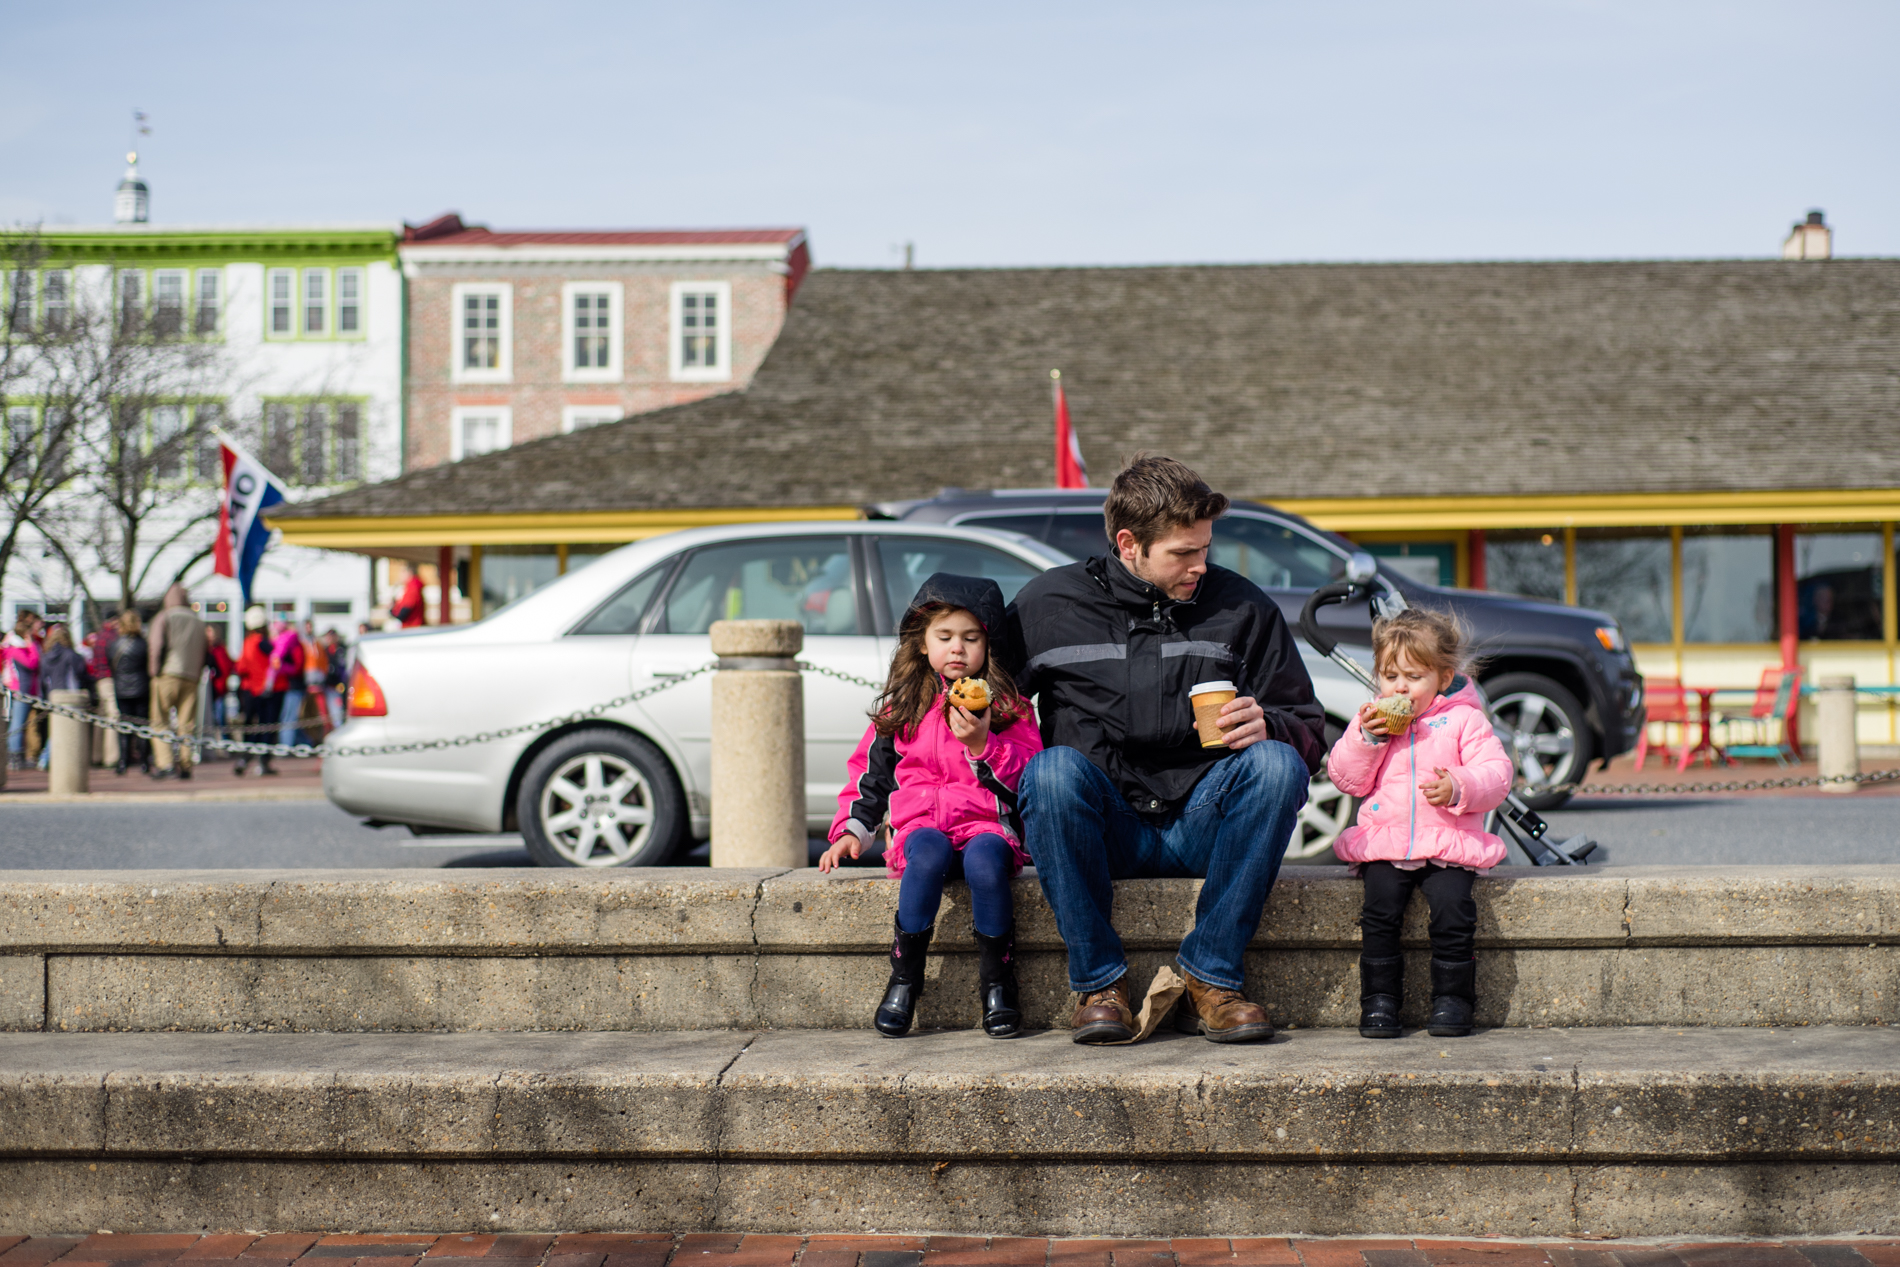 Families were all over Annapolis enjoying the sunny day.